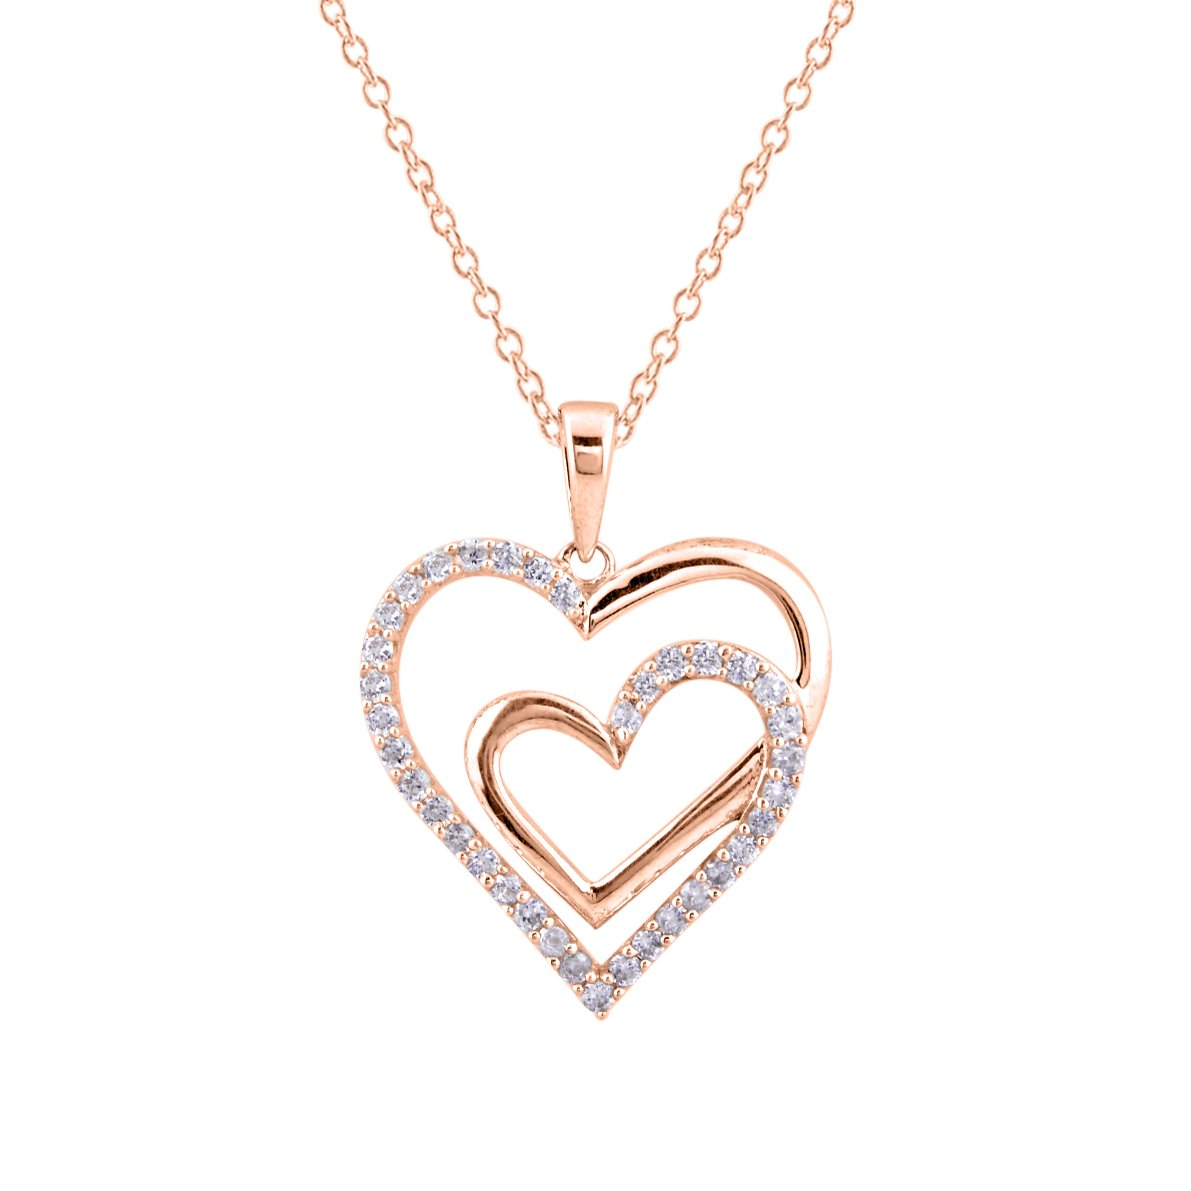 DiscountHouse4you 0.79 Ct Round White Cubic Zirconia Double Heart Pendant Necklace in 14k White Gold Over